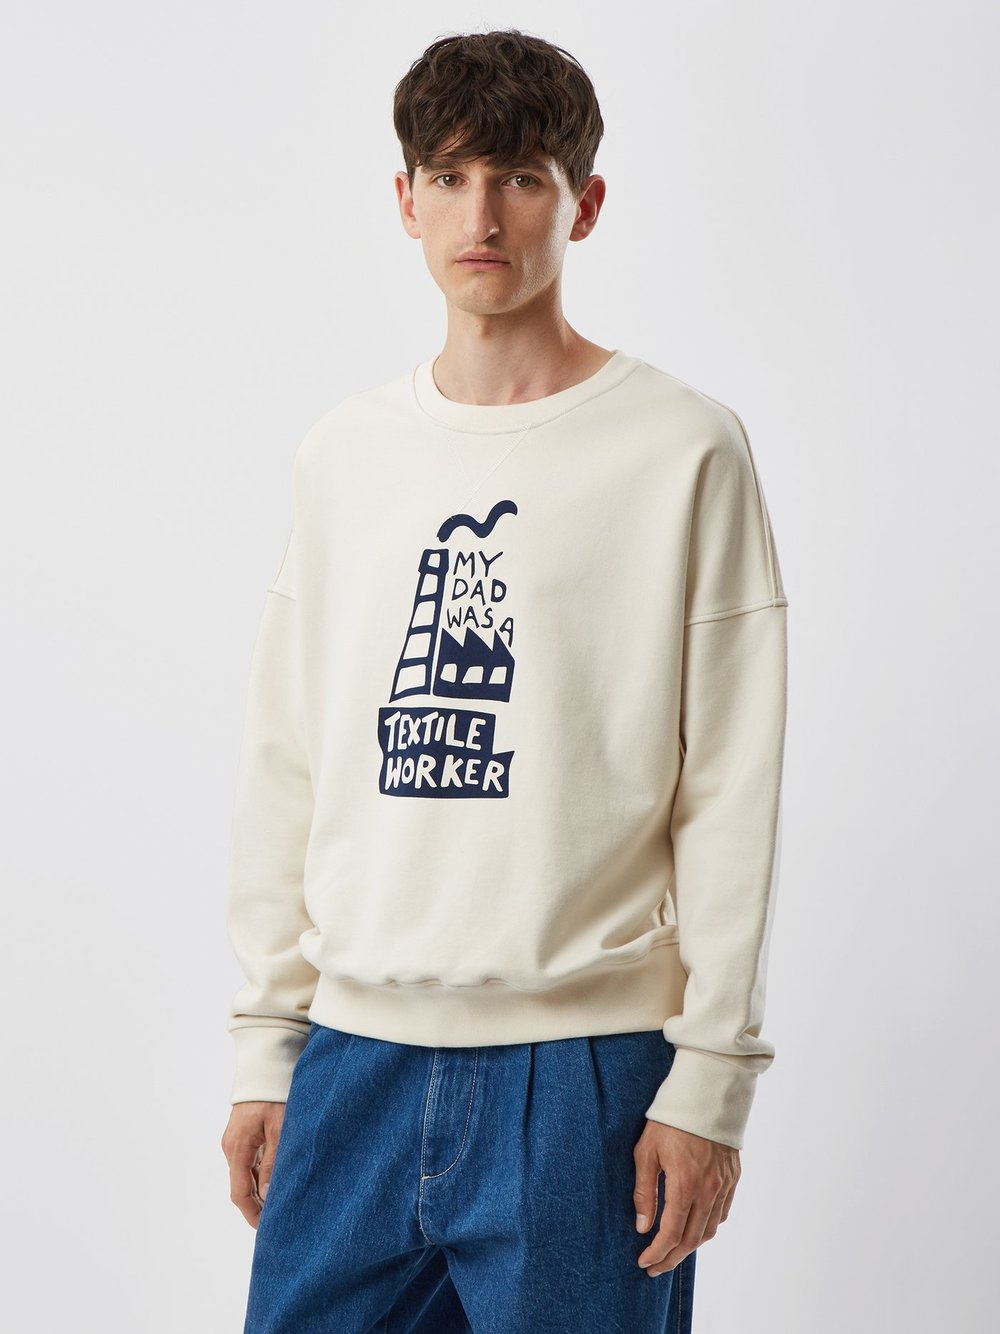 E. Tautz sweatshirt - £195 - Just one of the highlights from a superb spring collection.